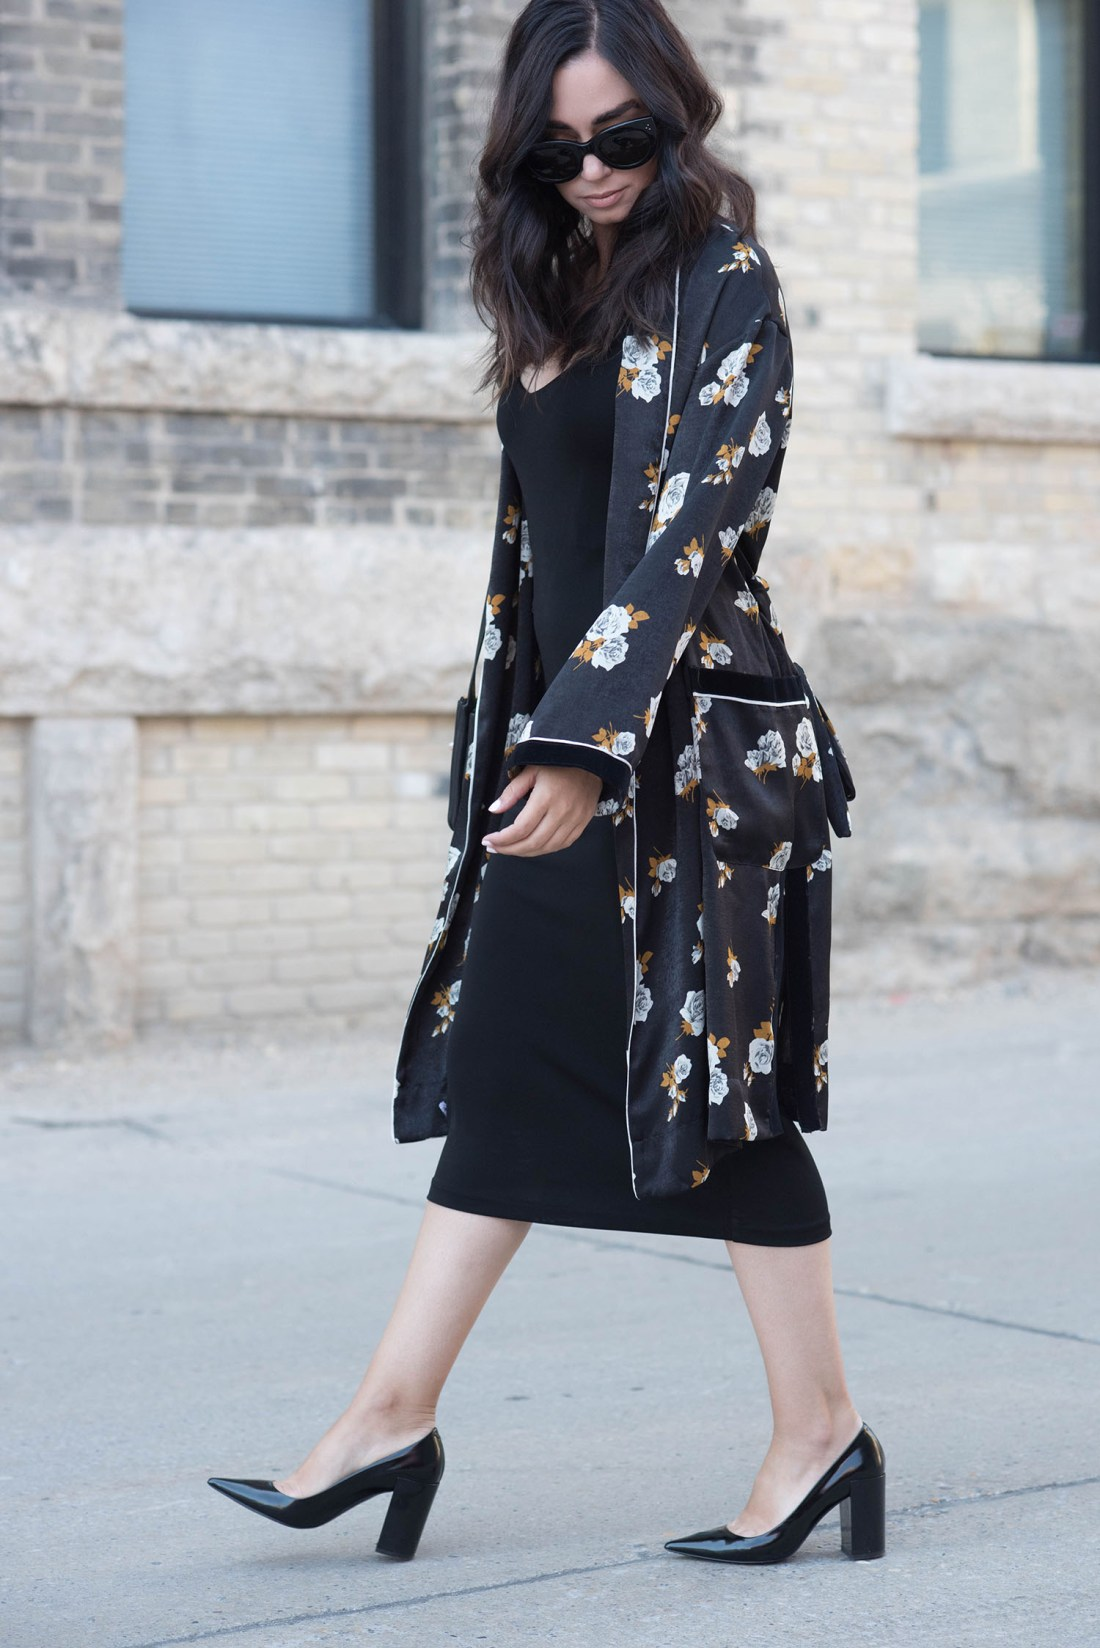 Top fashion blogger Cee Fardoe of Coco & Vera wears a Zara combined kimono and & Other Stories slip dress, with her hair styled by Fran Rizzutto